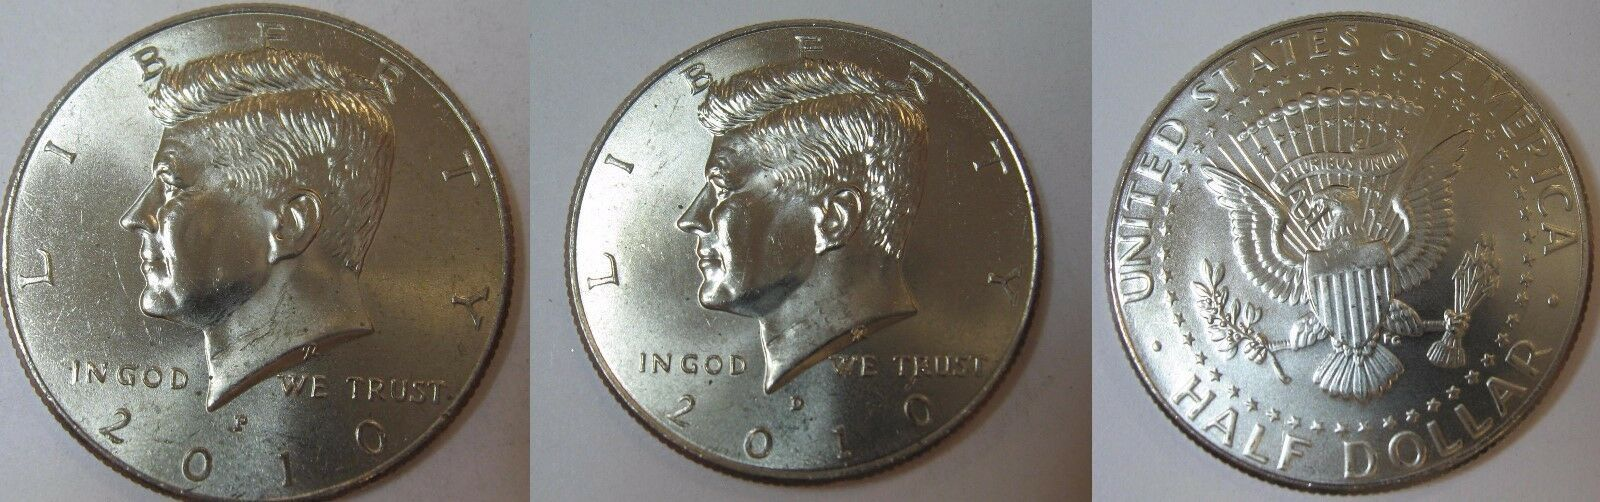 2010 P and D  BU Kennedy Half Dollar from US Mint Roll CP2438